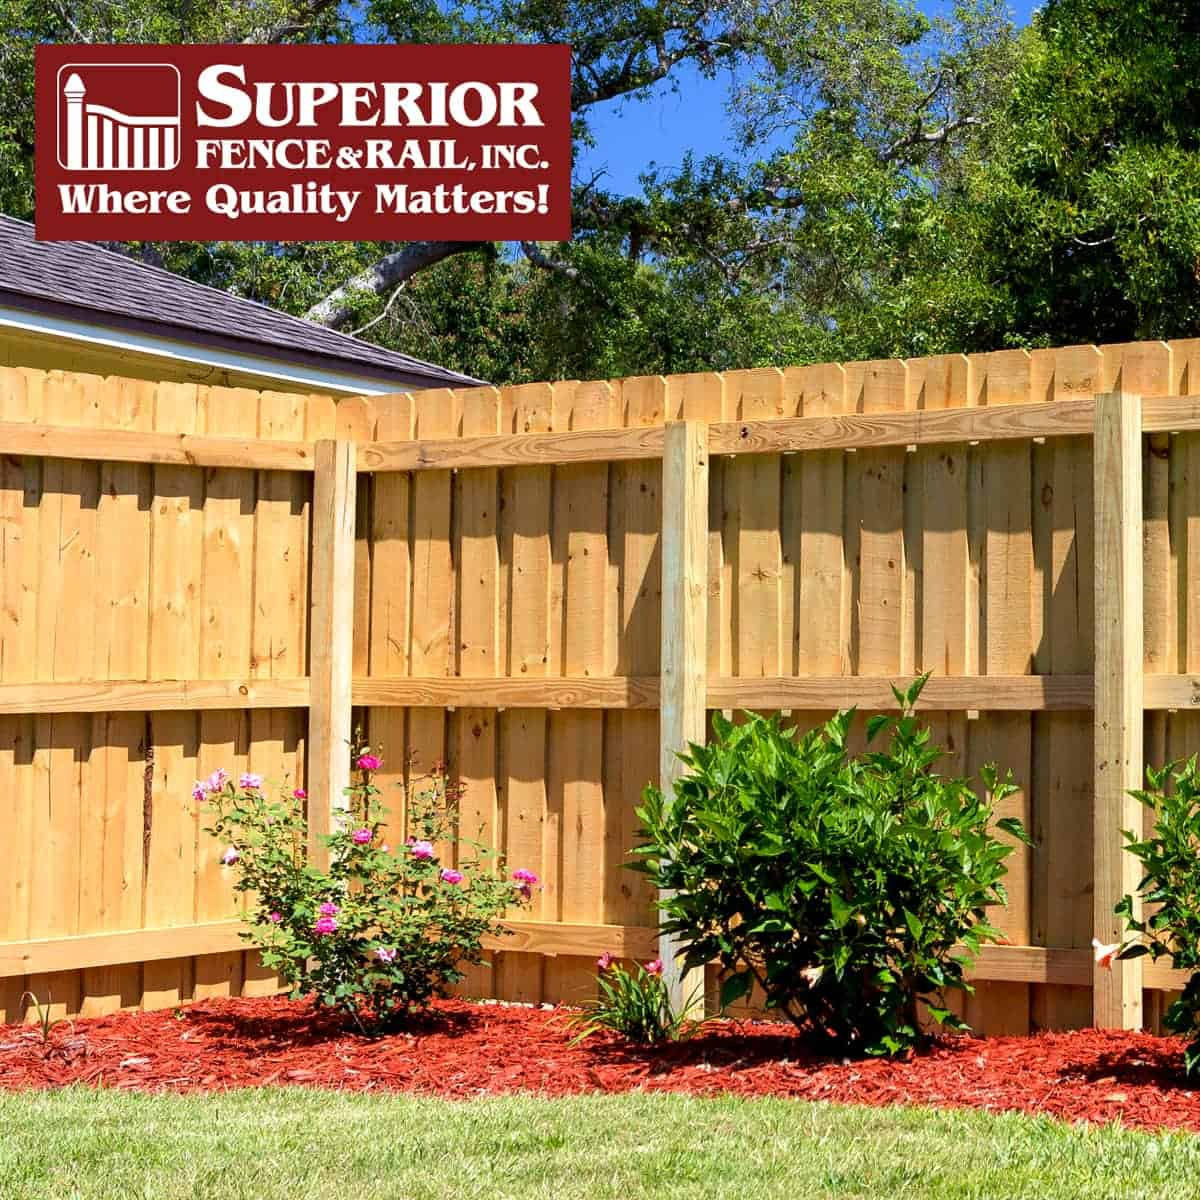 https://www.superiorfenceandrail.com/wp-content/uploads/2020/11/Hawthorne-Fence-Company-Contractor.jpg